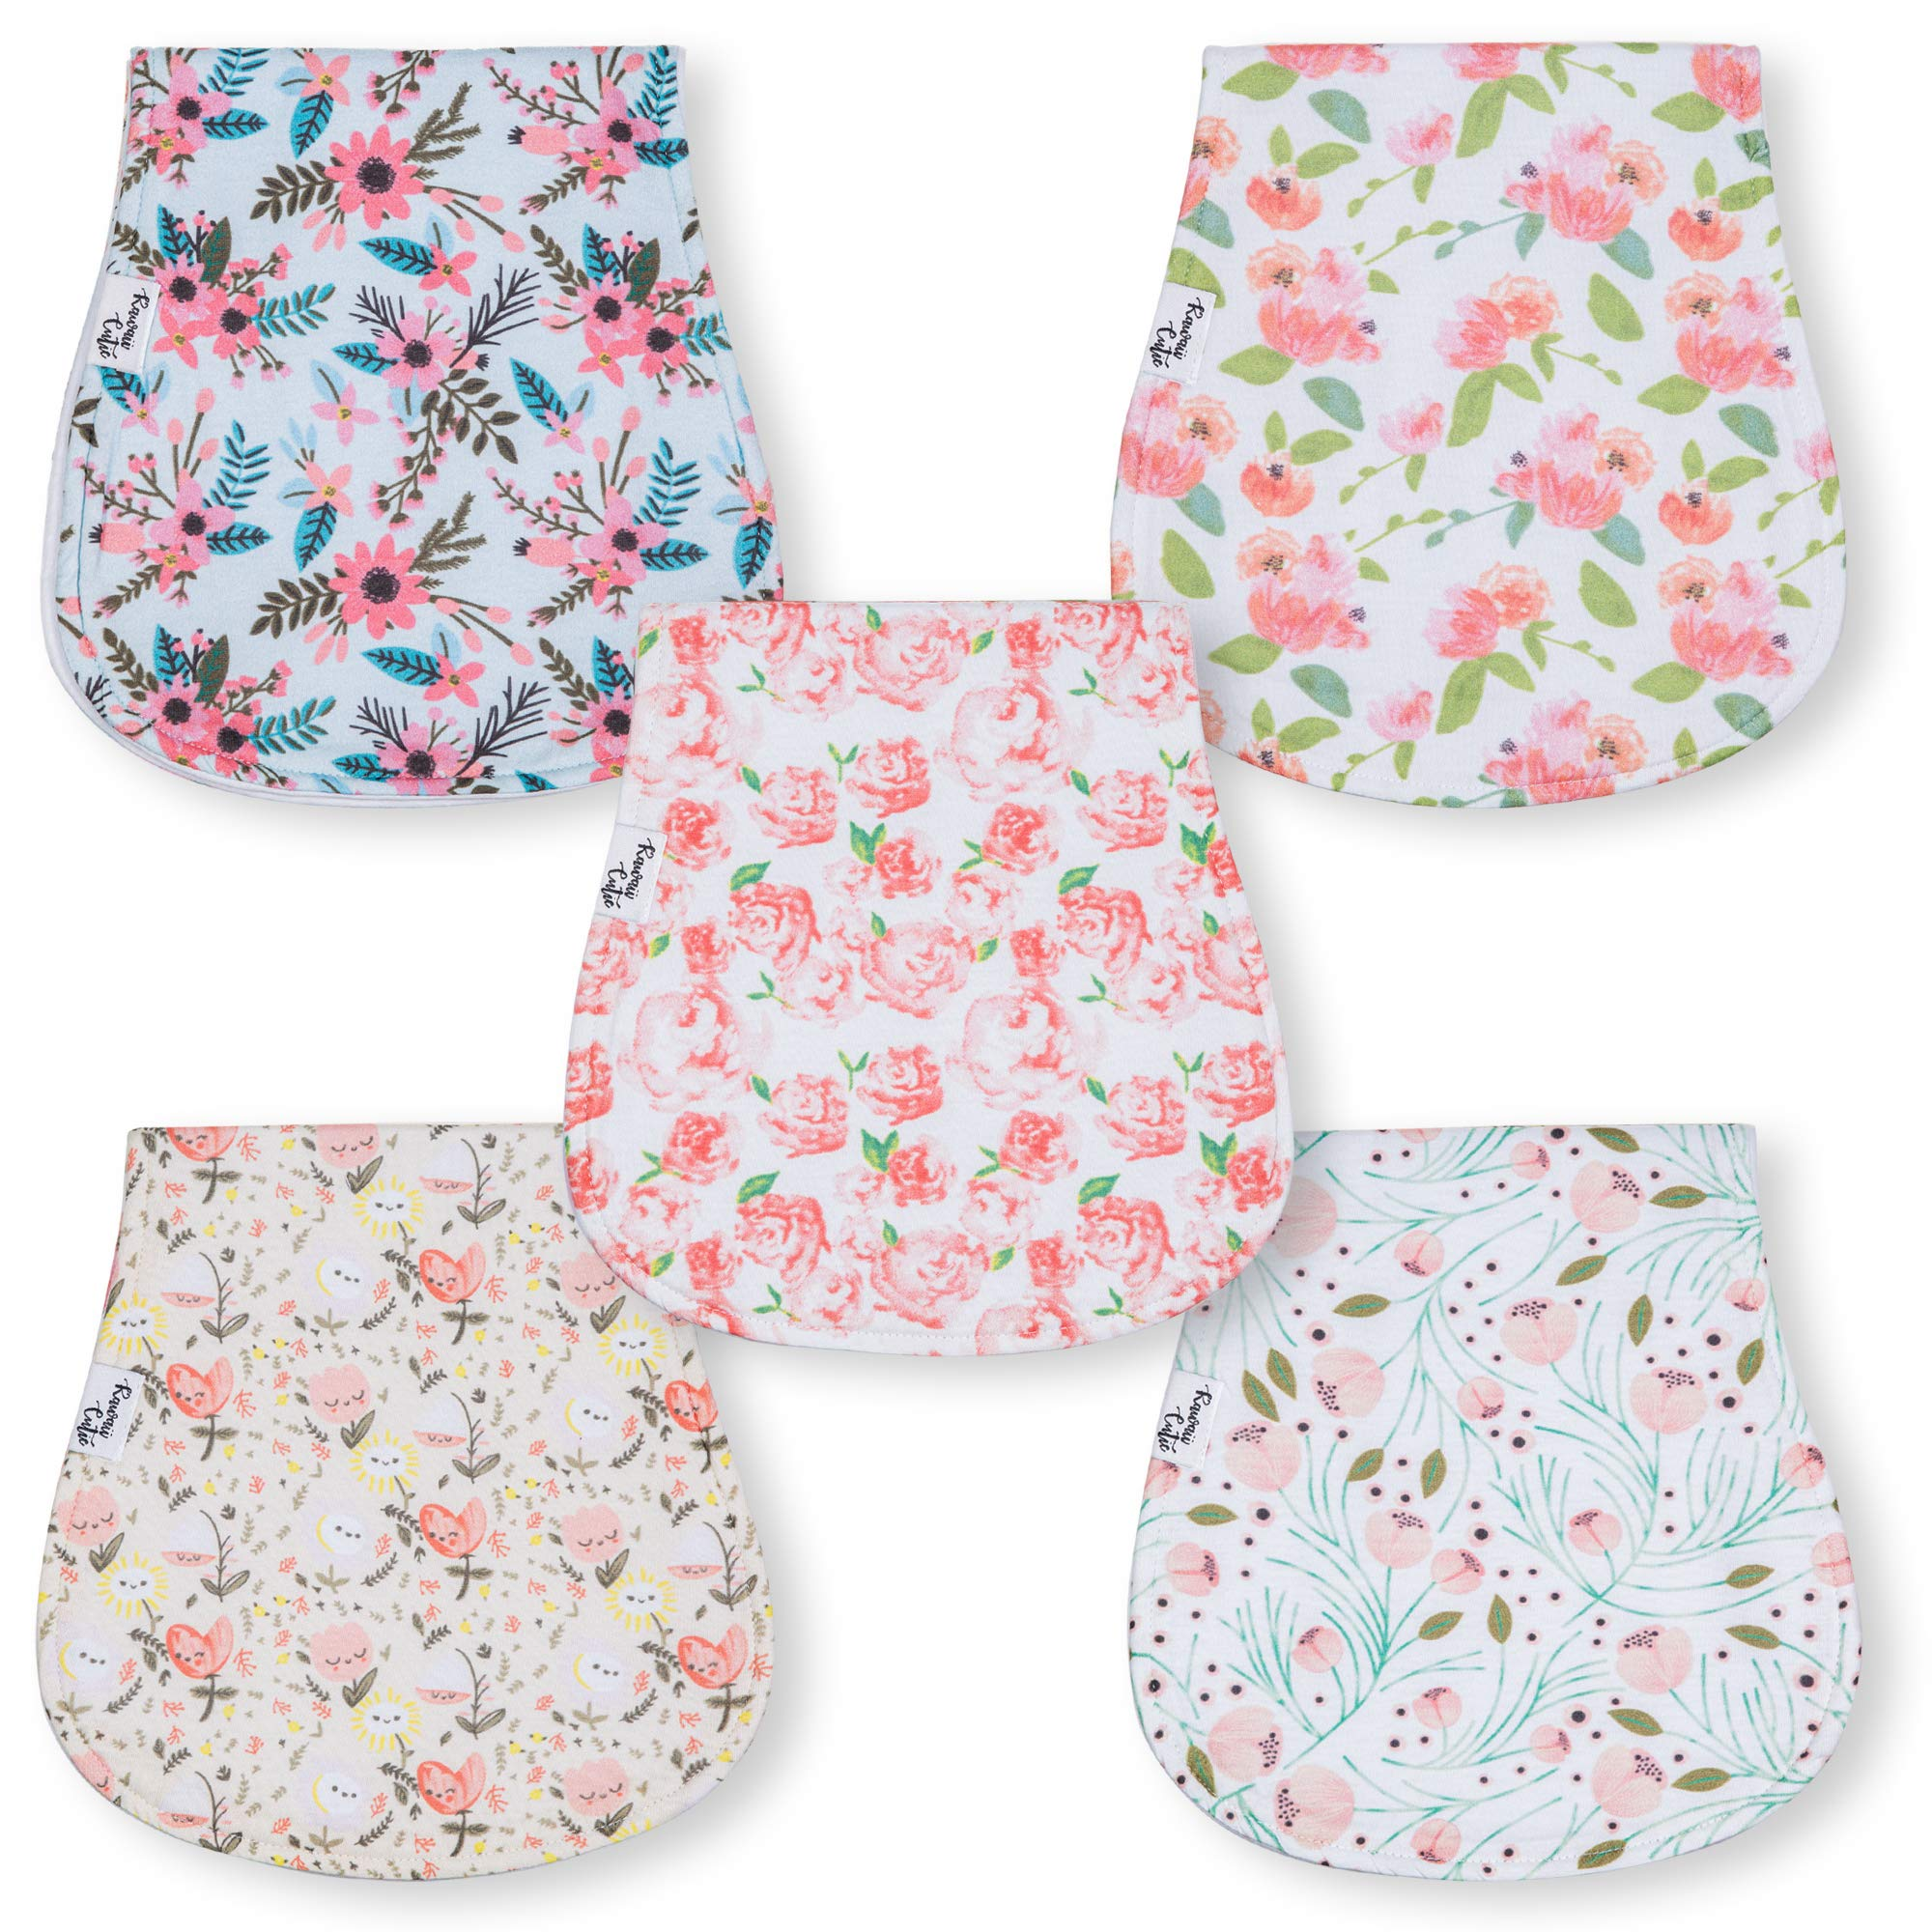 5 Pack Baby Burp Cloths for Girls | Pretty in Pink Floral Print Babies Burping Cloths | Soft Cotton Burp Towels with Beautiful Flowers | Large Spit Up Cloths Made with 3 Absorbent Layers by Kawaii Cutie